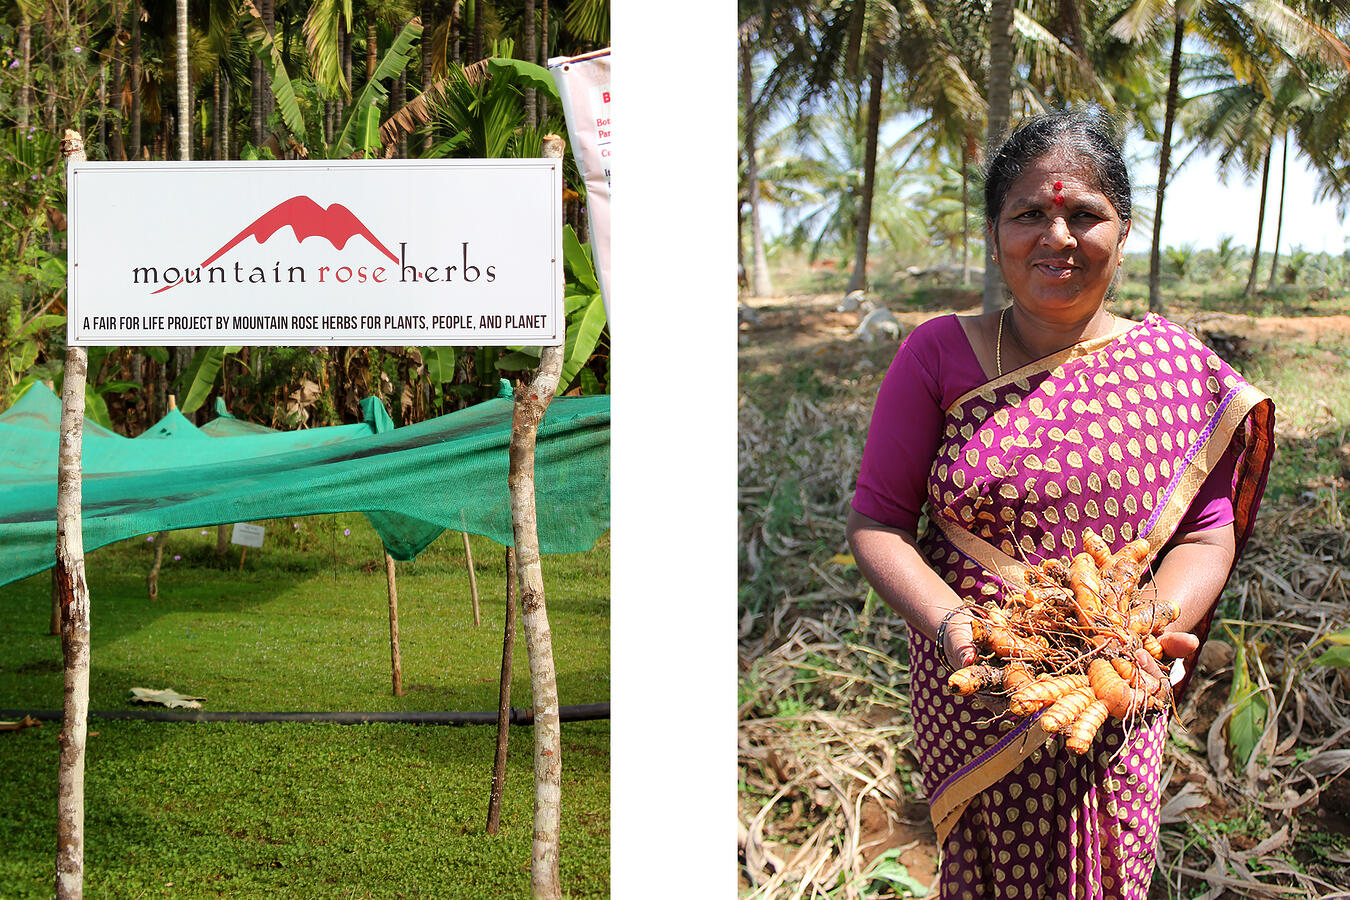 Mountain Rose Herbs Fair for Life project sign and woman in India holding turmeric root